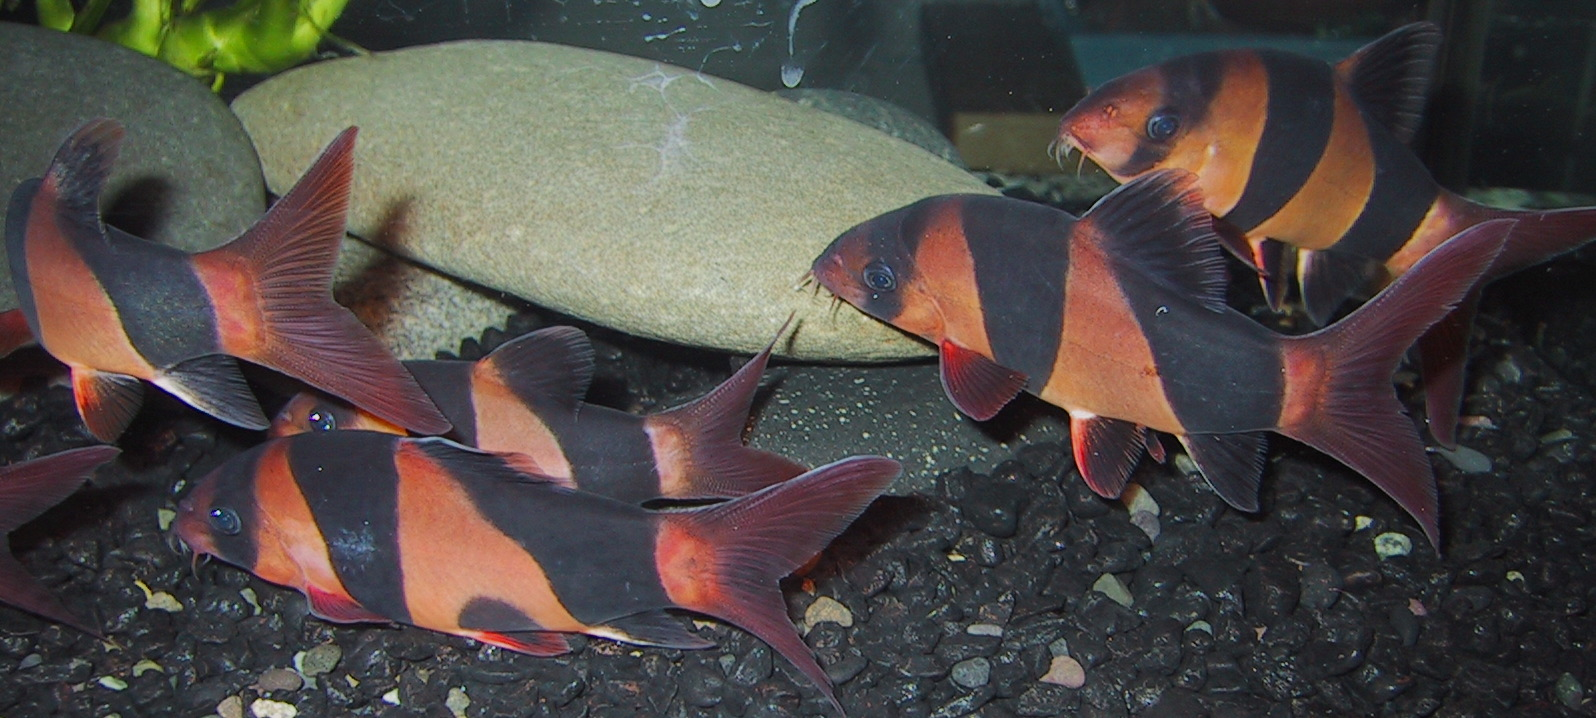 Chromobotia macracanthus - Group of very colorful Clowns